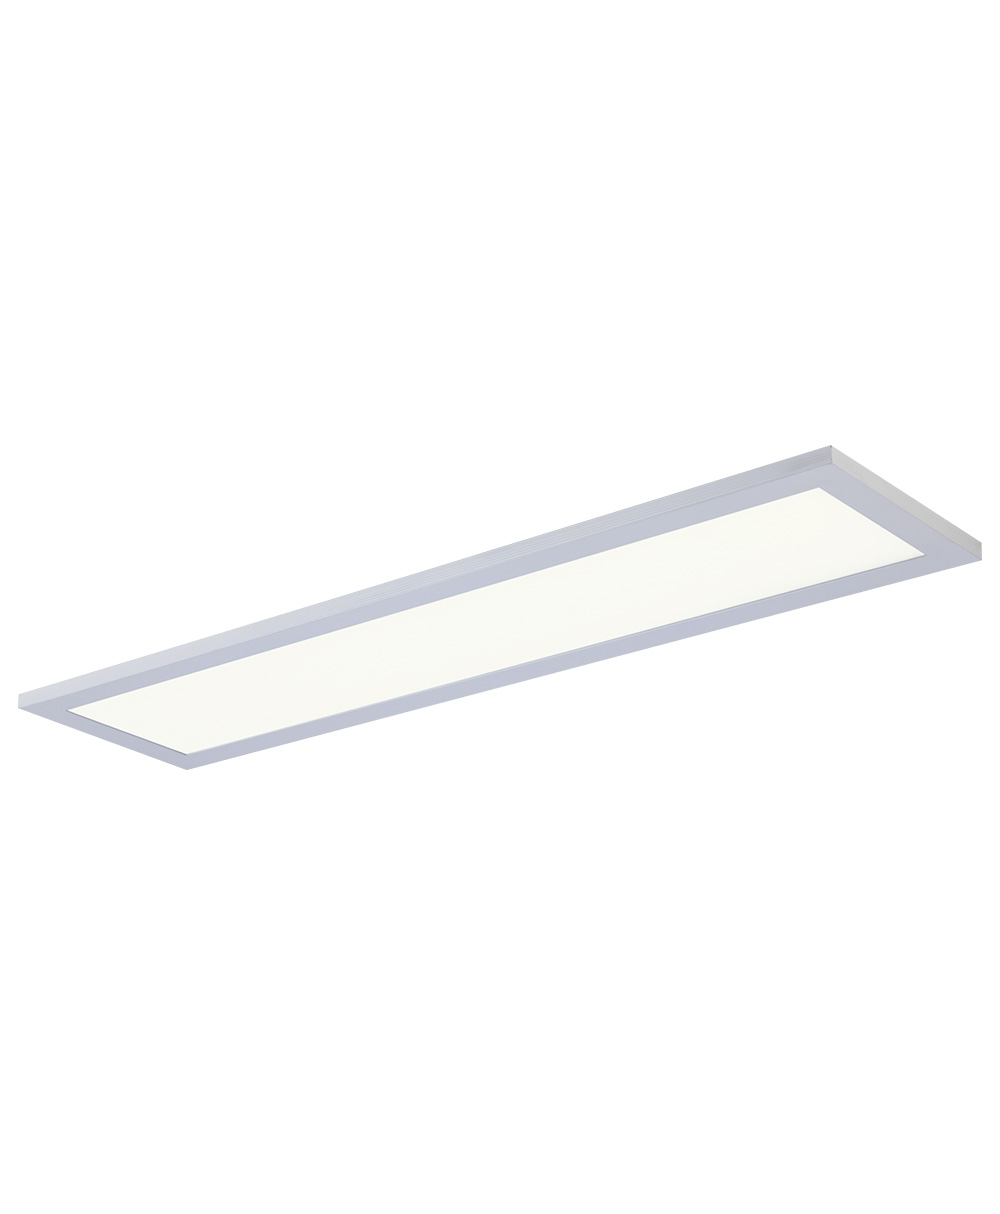 FORUM LED Panel Light